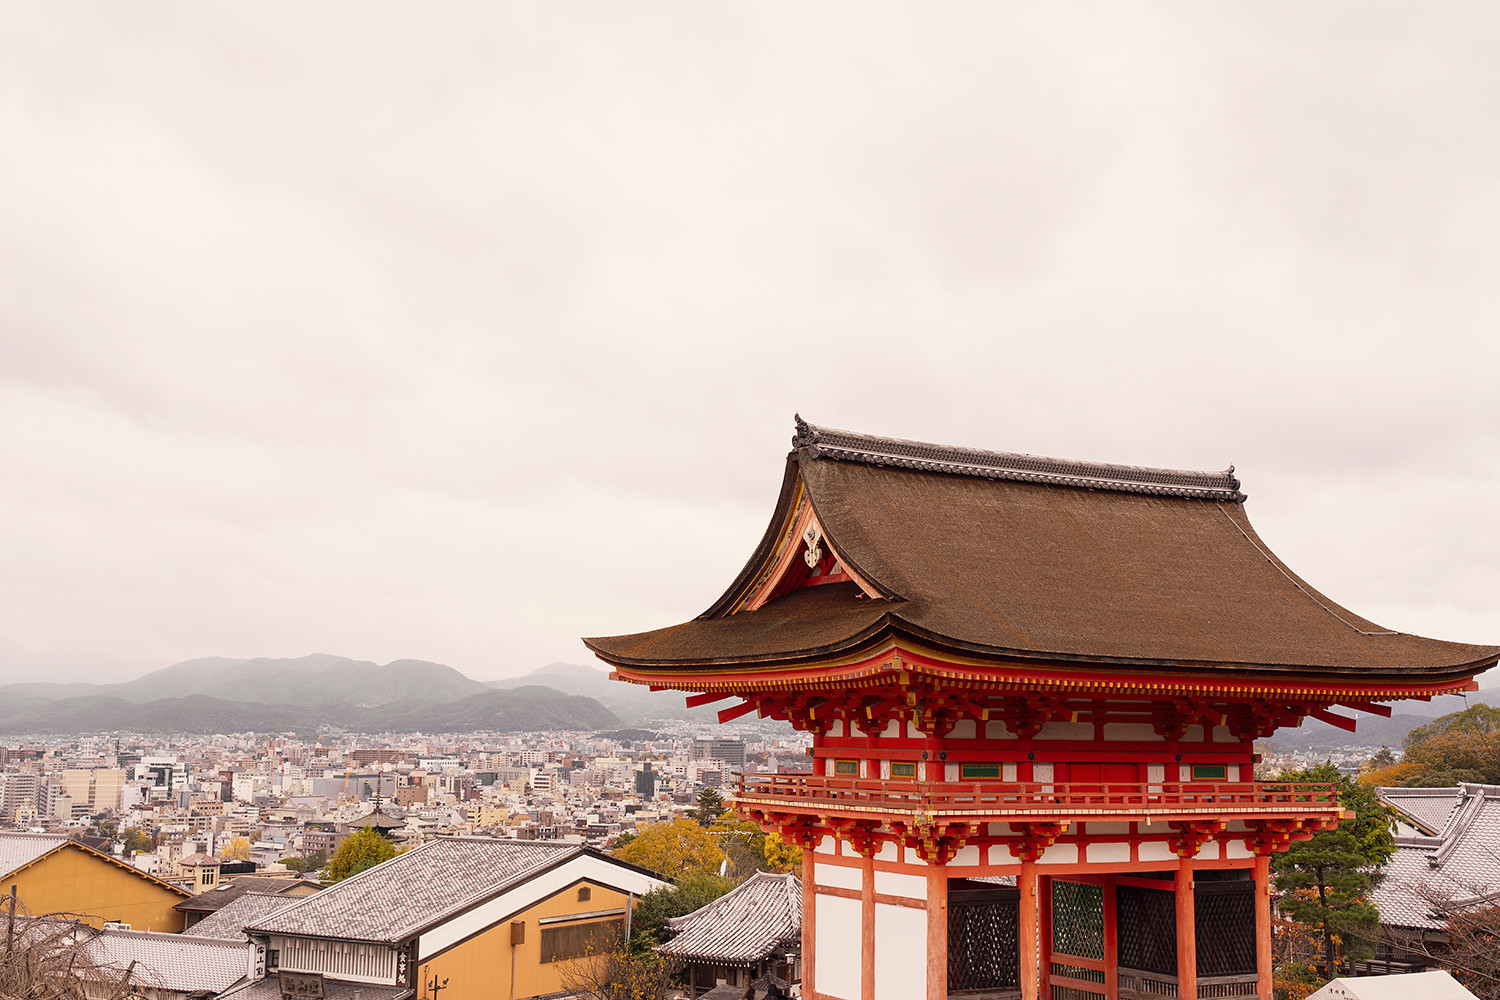 15kyoto-kiyomizudera-temple-shrine-japan-architecture-travel